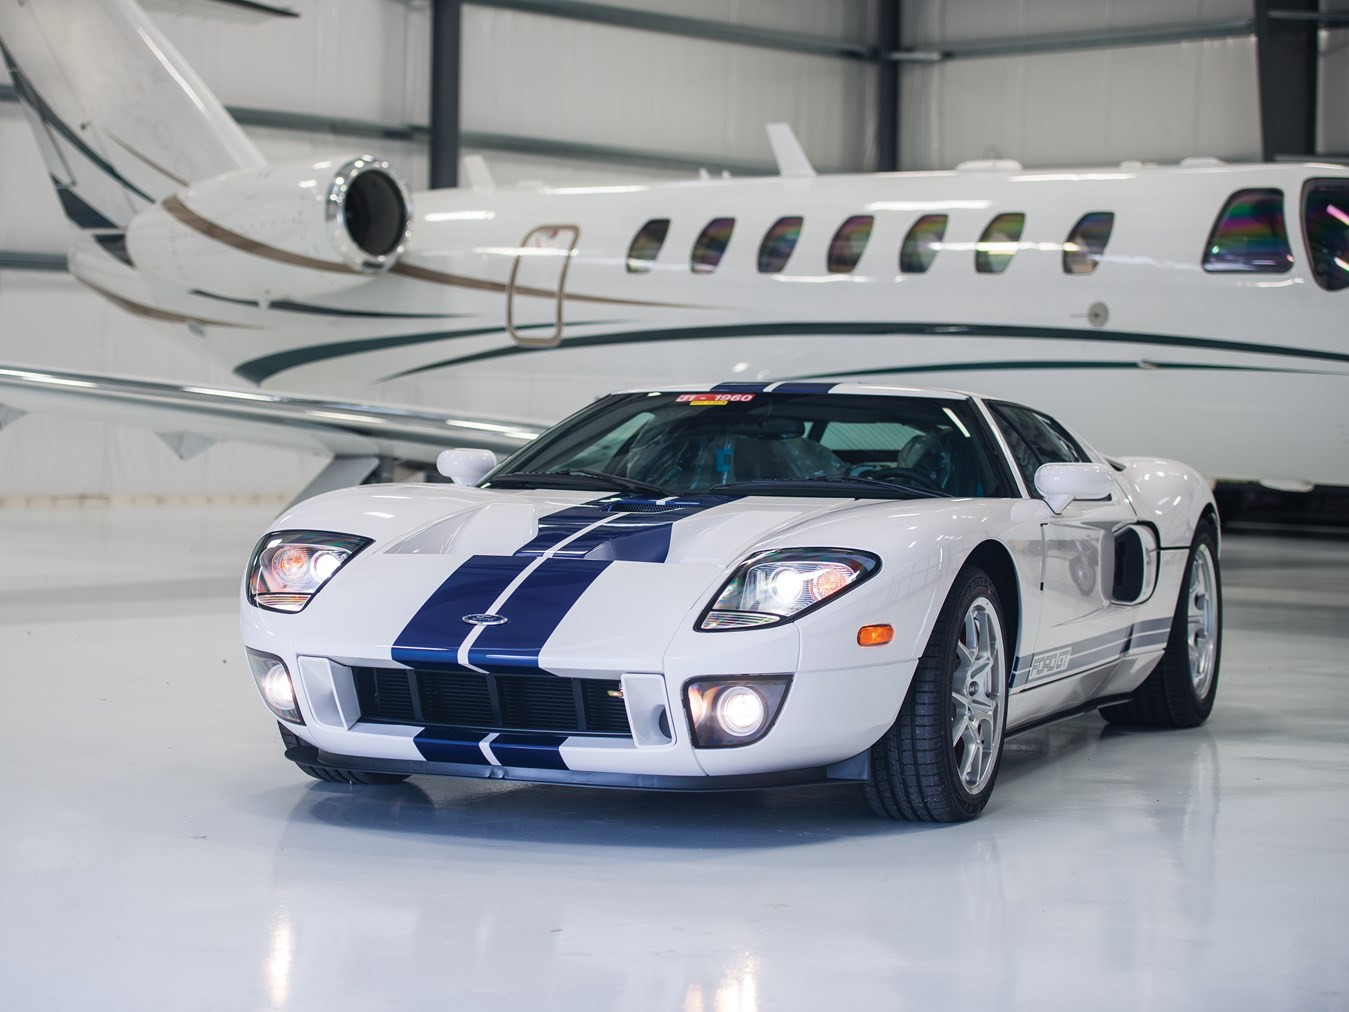 Old Ford Gt Heads To Auction With 10 8 Miles On The